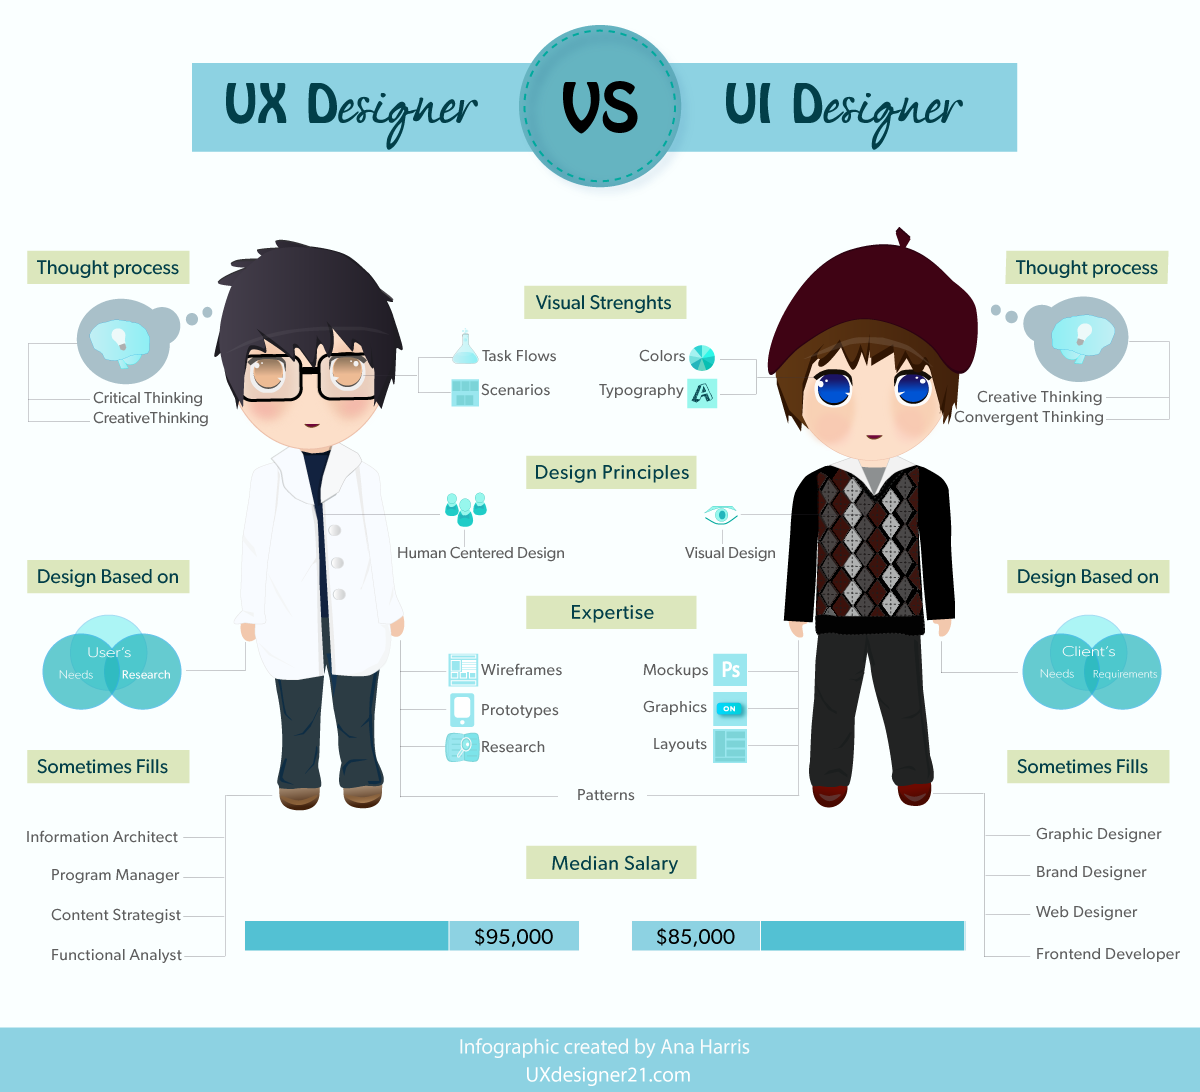 UX Design VS UI Design | Ux designer, Designers and Ux design